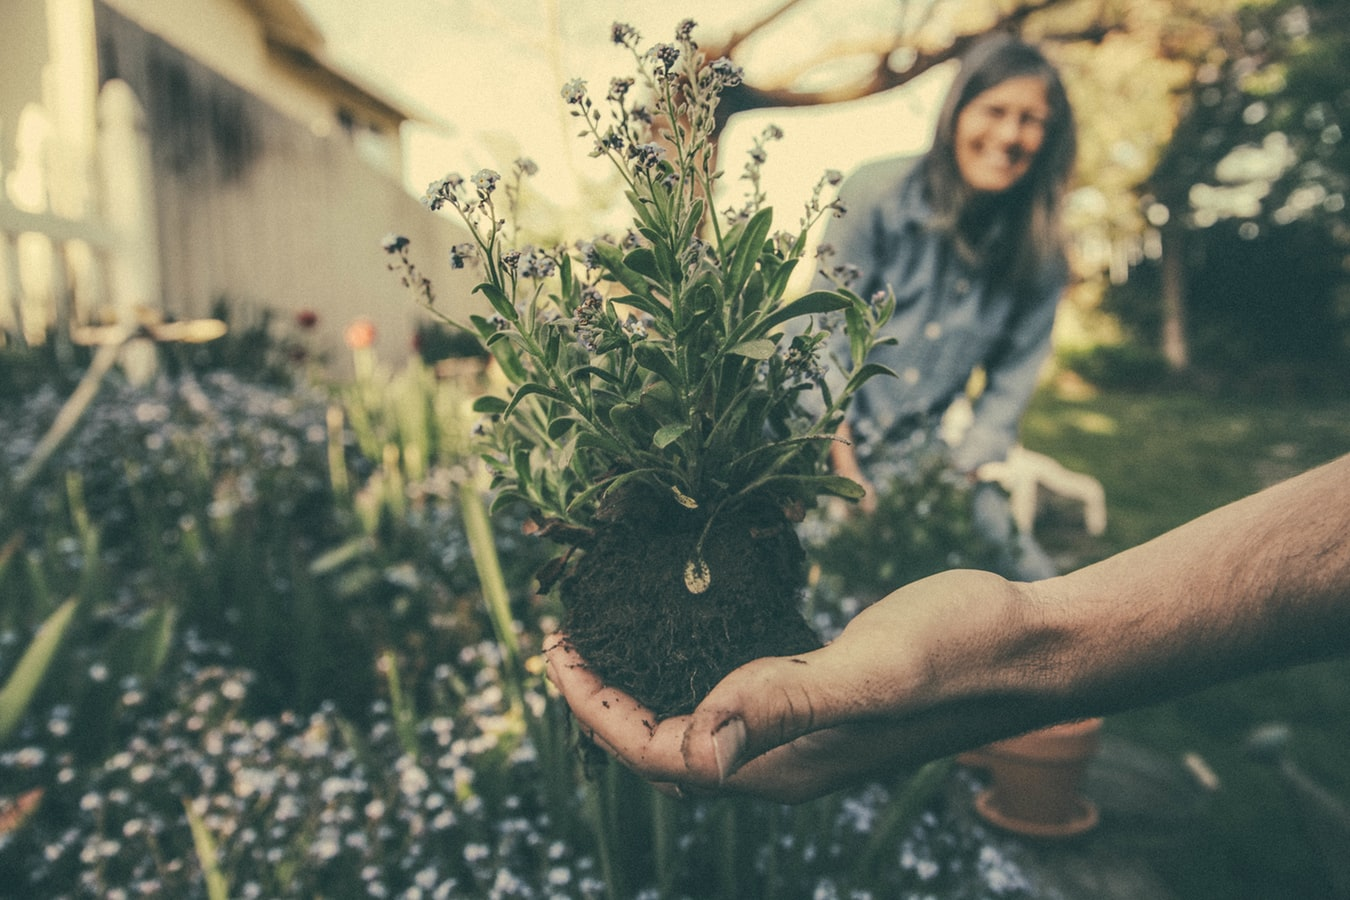 Hand holding uprooted plant with woman smiling in the background